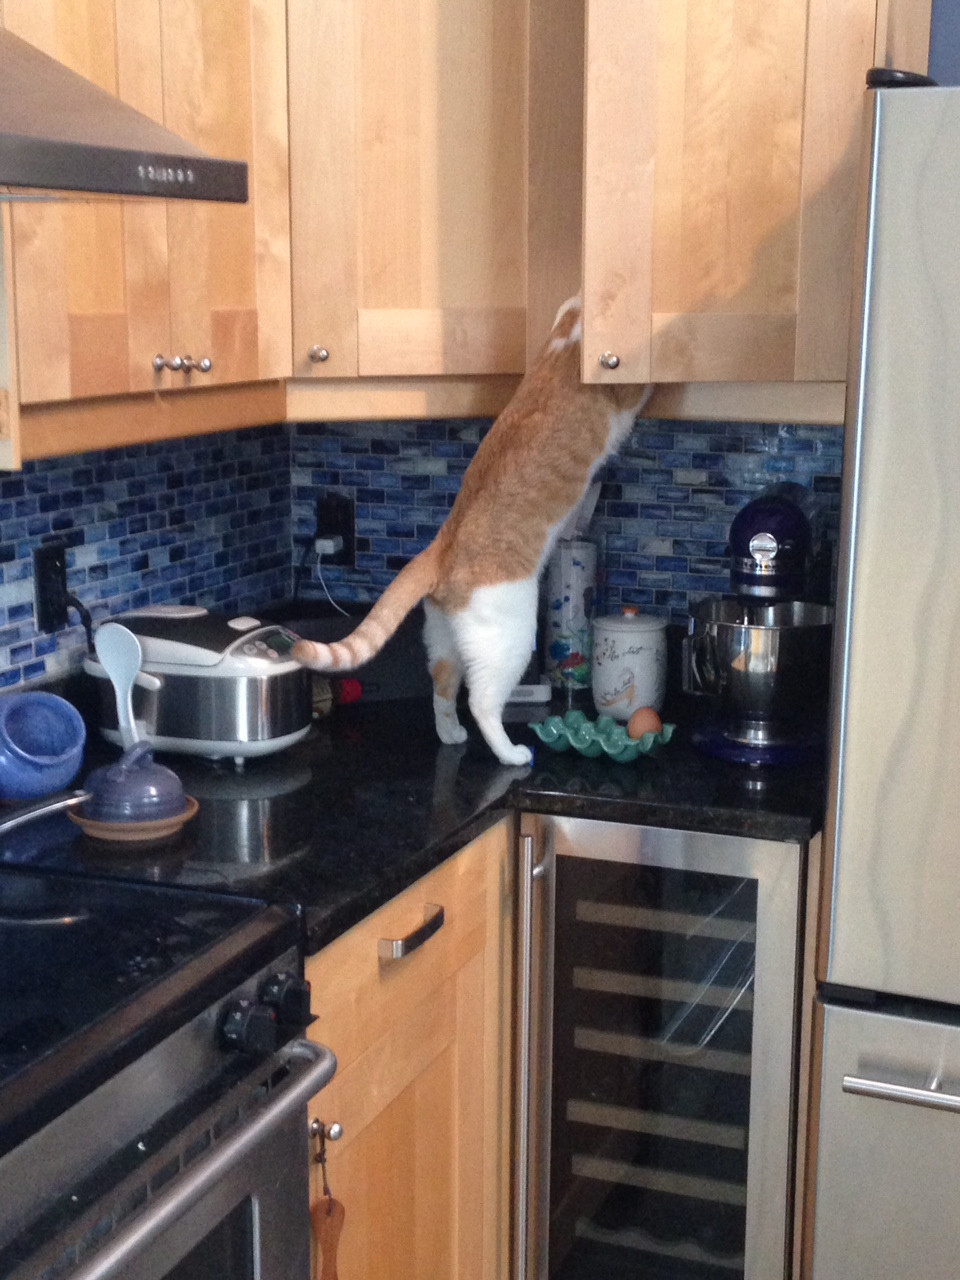 13 pets who've figured out how to feed themselves, thankyouverymuch